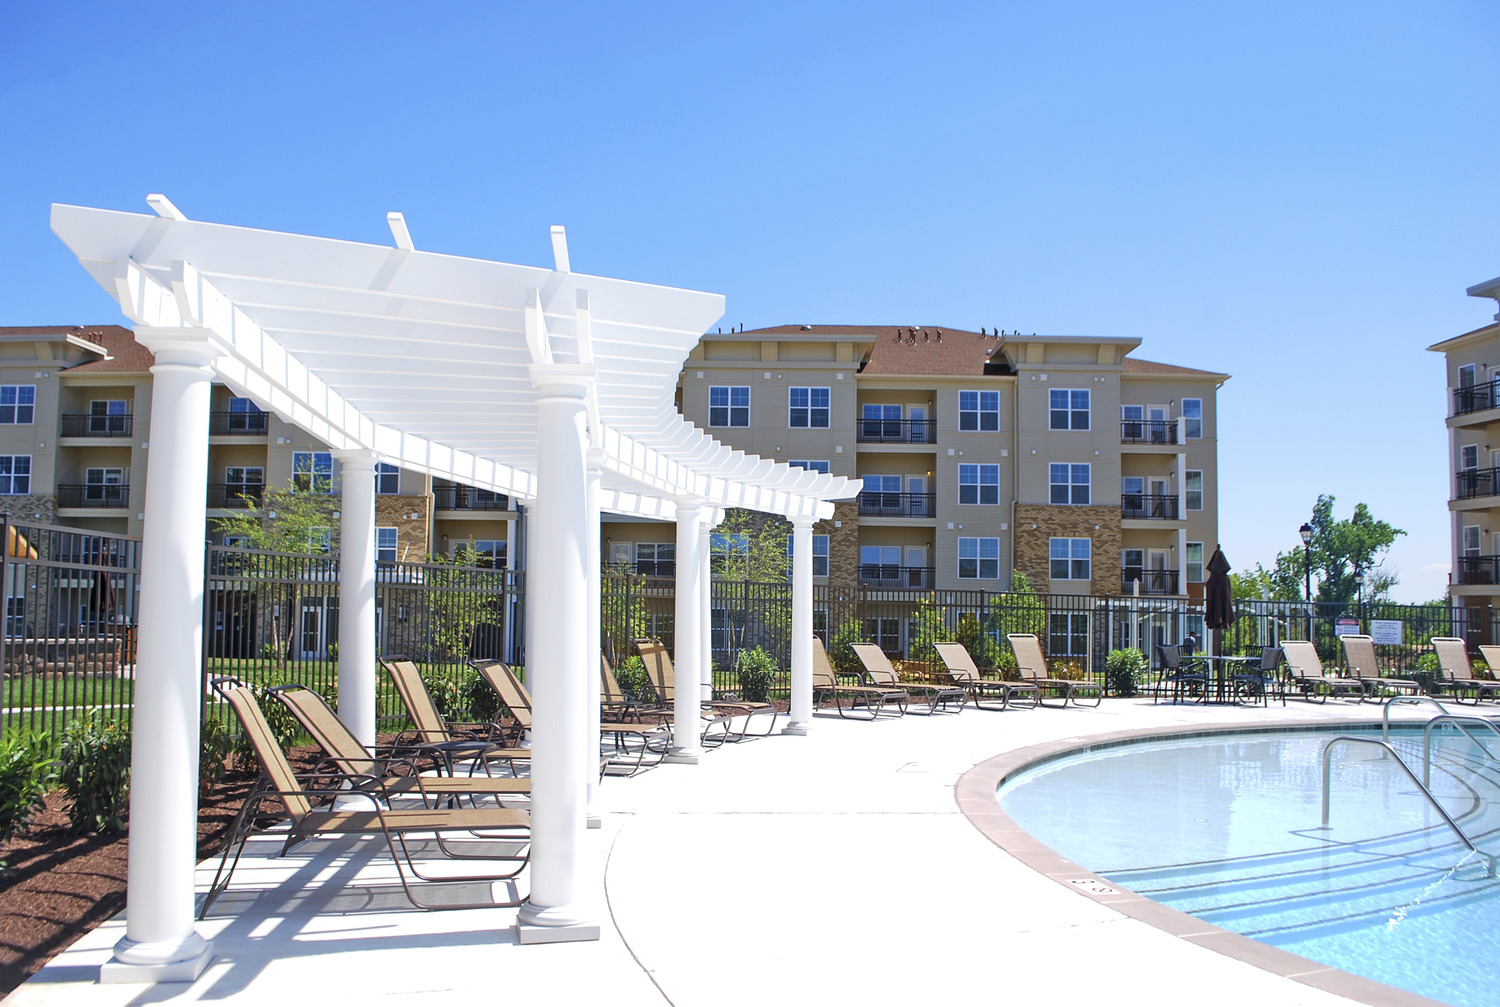 CBG builds Paragon at Columbia Overlook, a 320 Market-Rate Apartment Homes in Elkridge, MD - Image #7